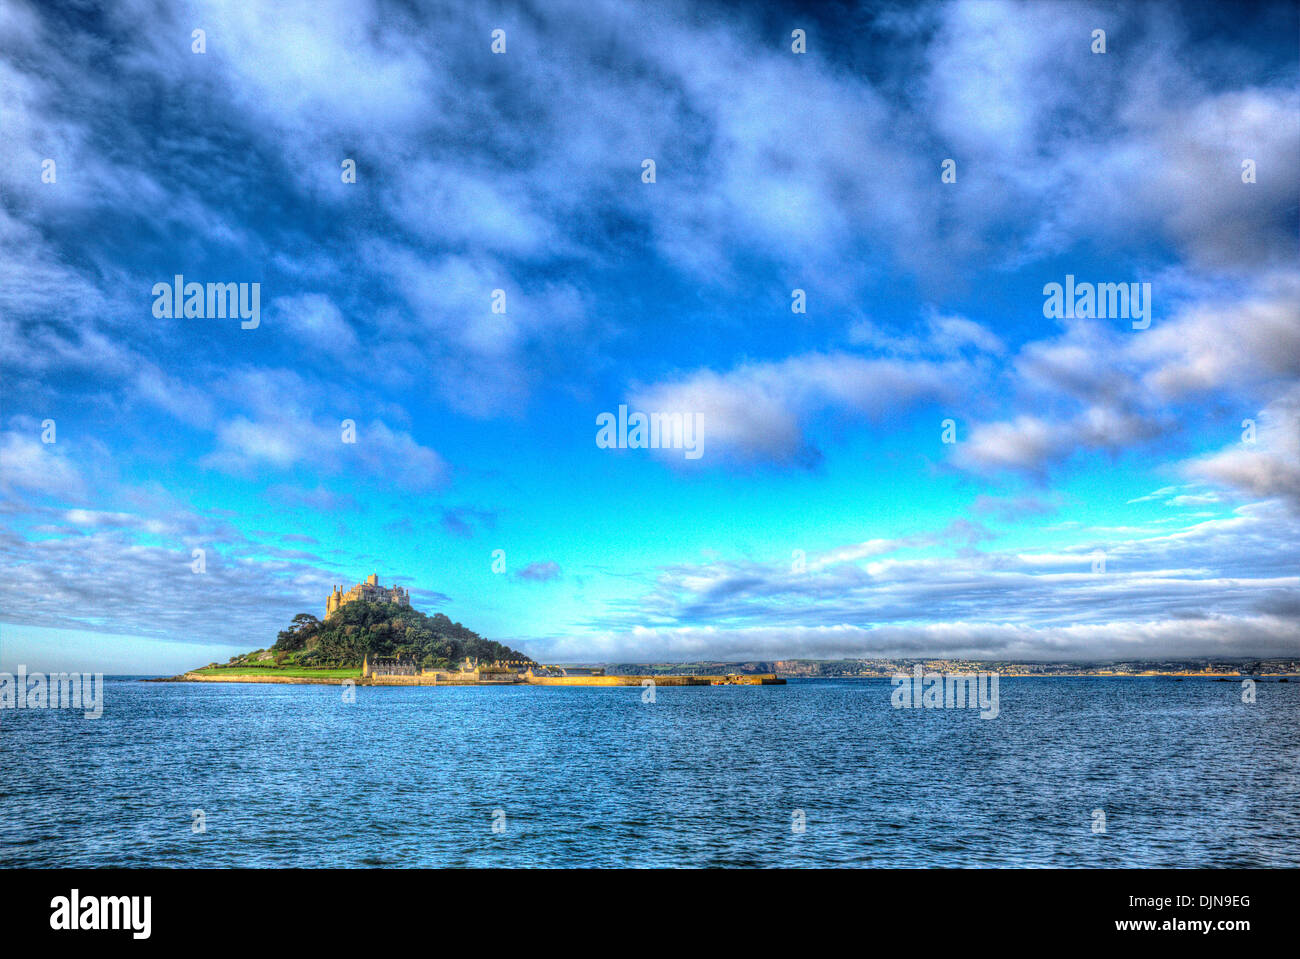 Medieval castle on island St Michaels Mount Cornwall England with vivid Cloudscape in HDR like painting - Stock Image